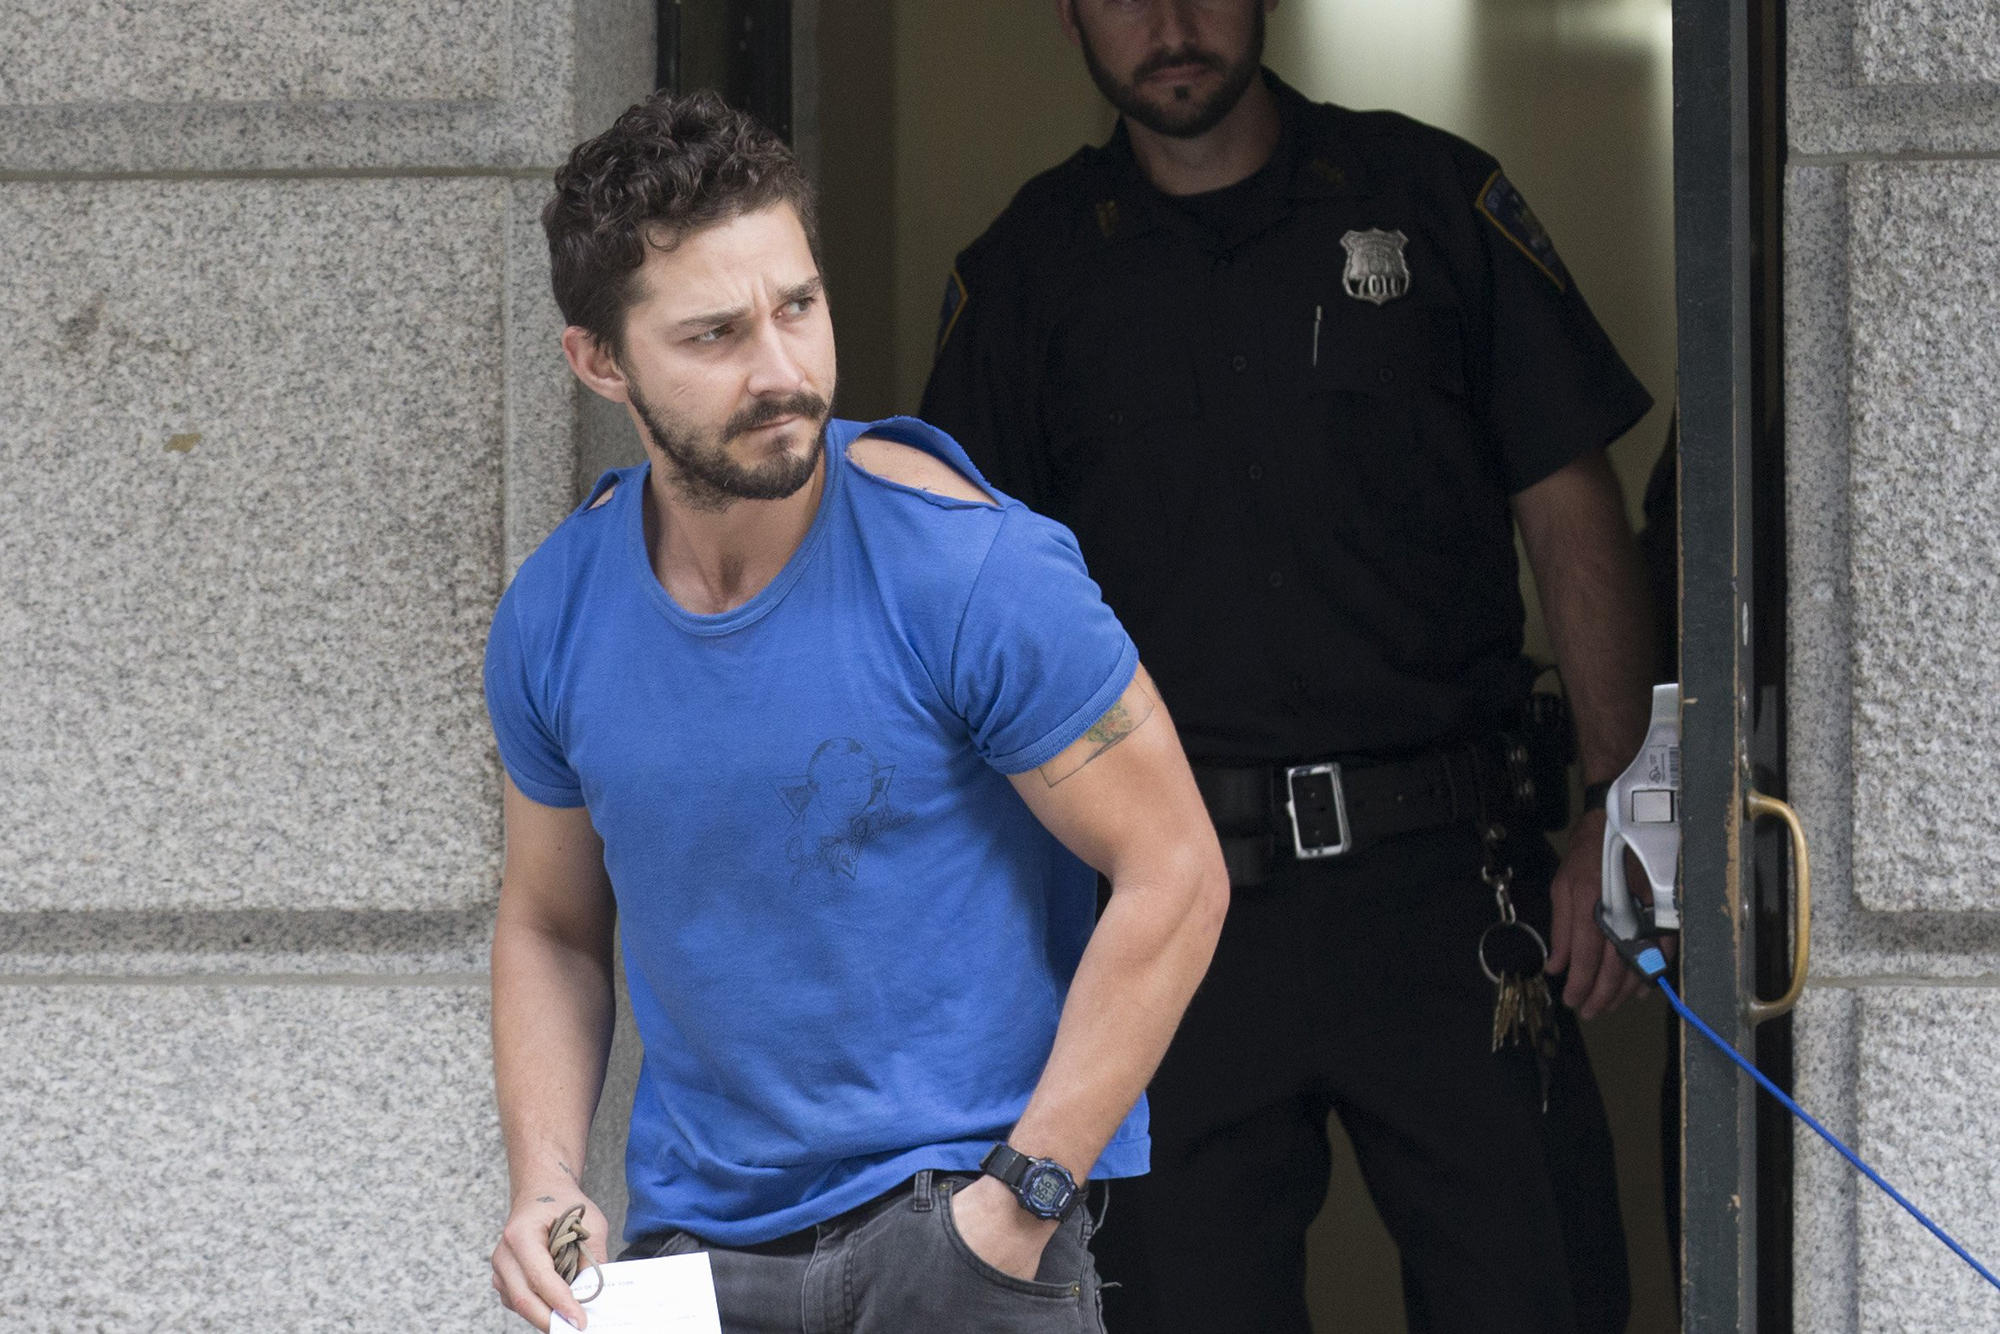 Actor Shia LaBeouf leaves Midtown Community Court after being arrested the previous day for yelling obscenities at the Broadway show  Cabaret,  June 27, 2014, in New York.